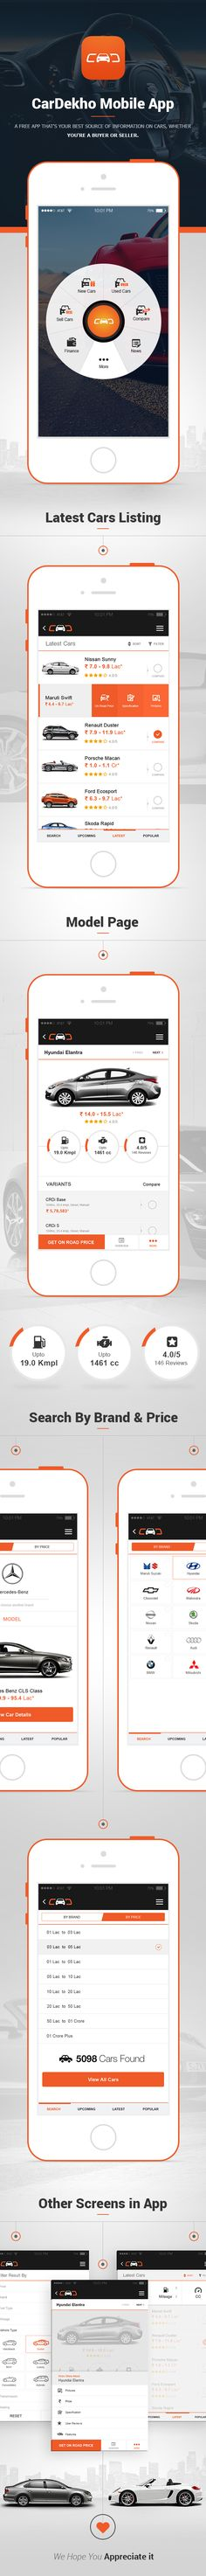 Welcome to the CarDekho Mobile Apps  A Free app that's your best source of information on cars, whether you're a Buyer or Seller.  Keeps you informed of what's happening in the Auto industry, gives platform to Compare Cars, Read User & Expert Reviews, Get on-road pricesand Lots More!  Download Now, Install and Explore  www.cardekho.com